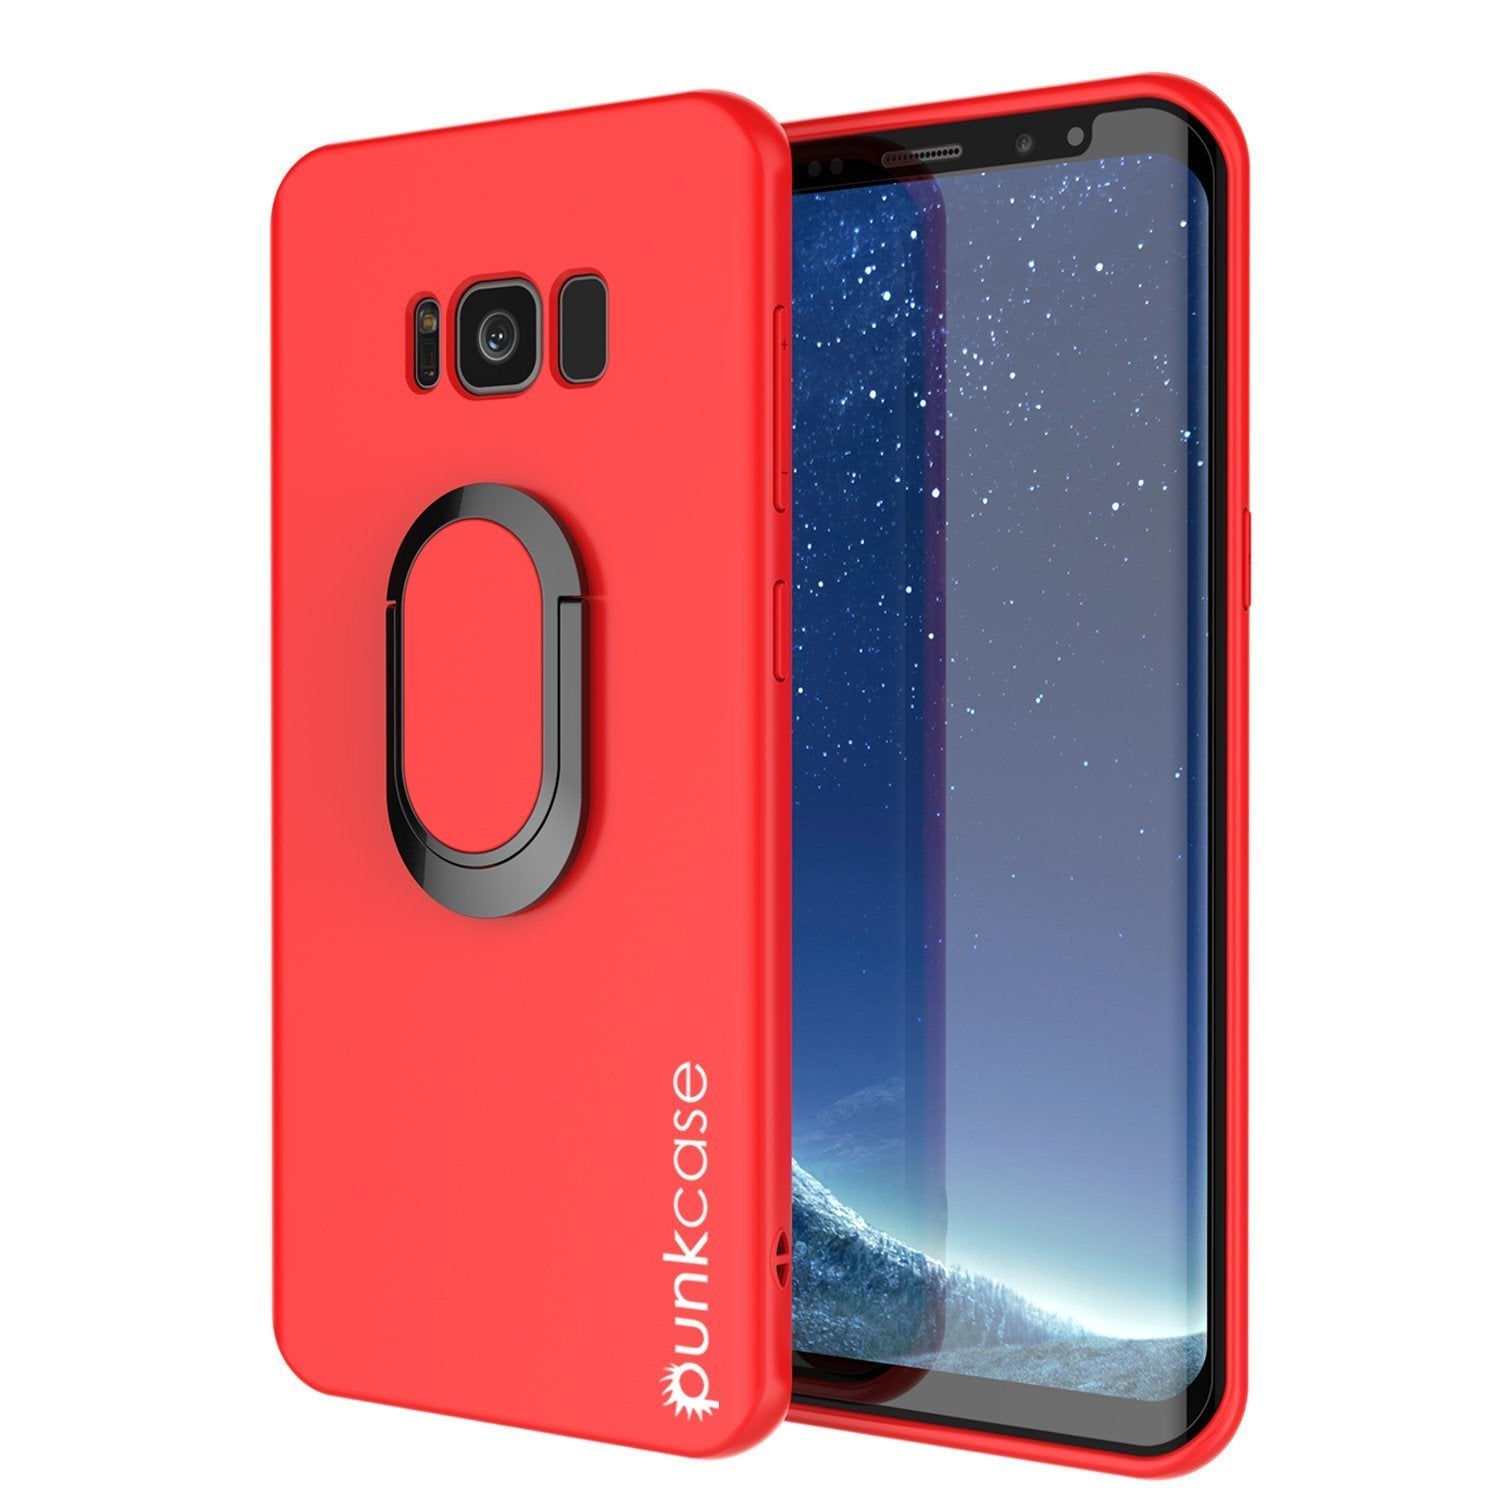 Galaxy S8 PLUS, Punkcase Magnetix Protective TPU Cover W/ Kickstand, Screen Protector [Red] - PunkCase NZ